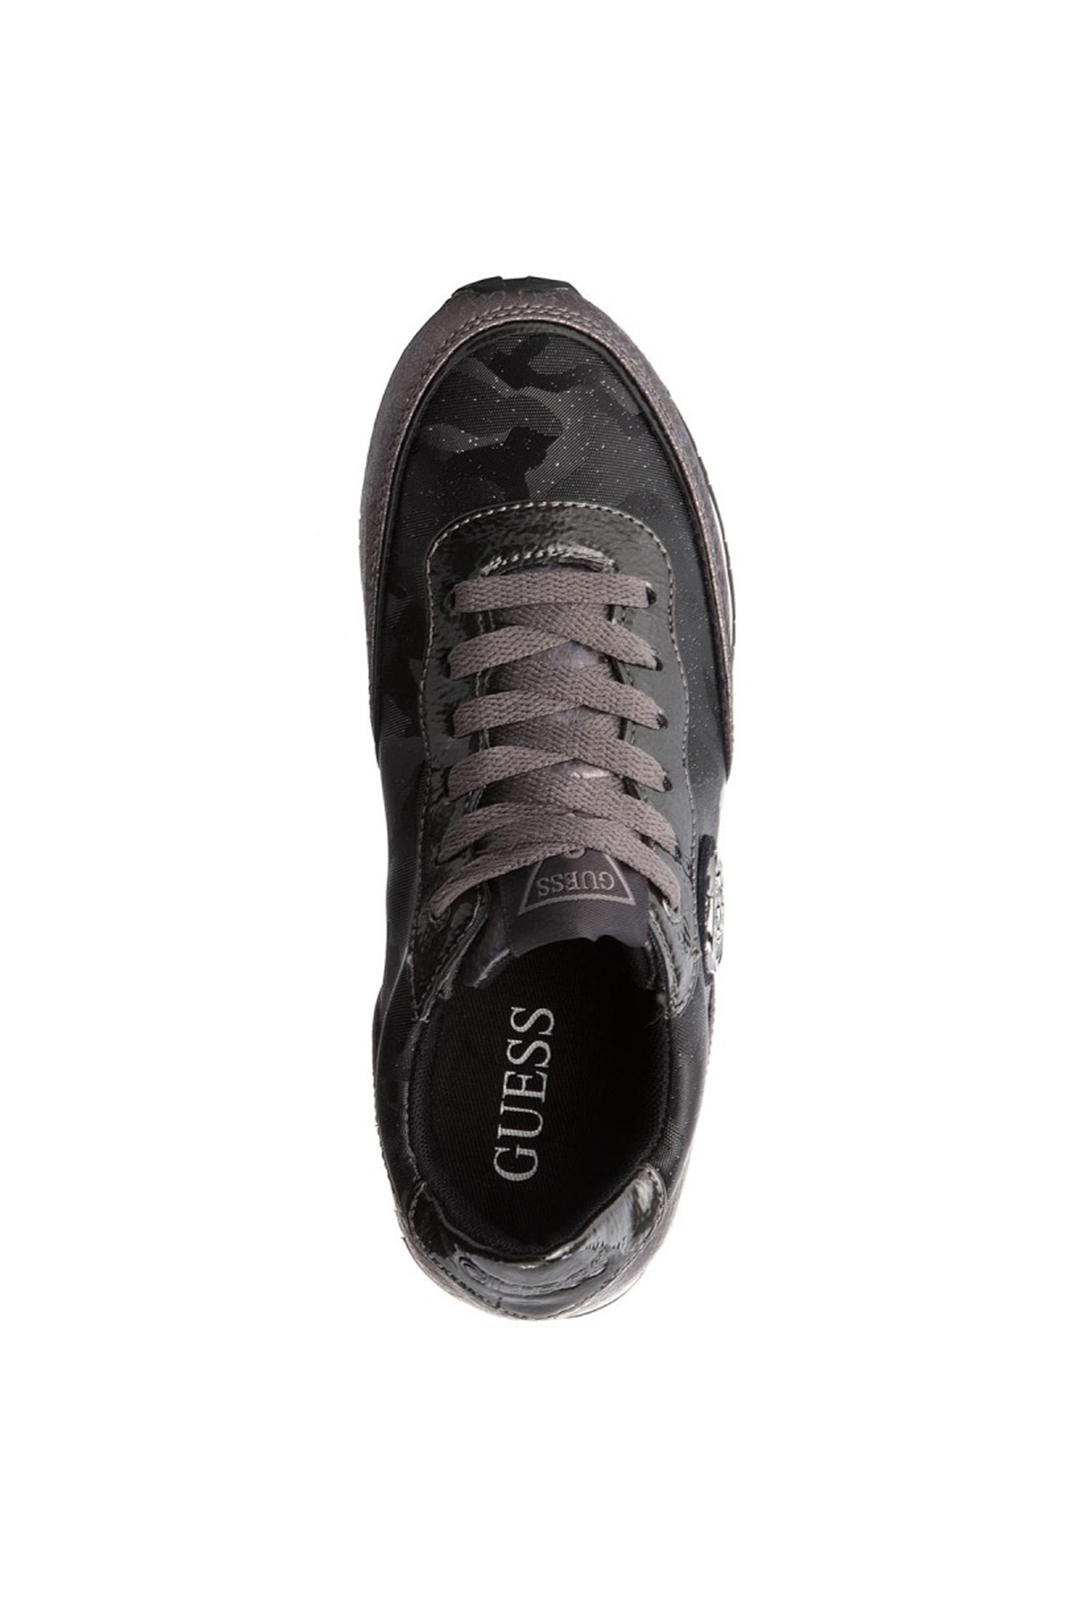 Baskets / Sneakers  Guess jeans FLSNN3 FAB12 BLACK